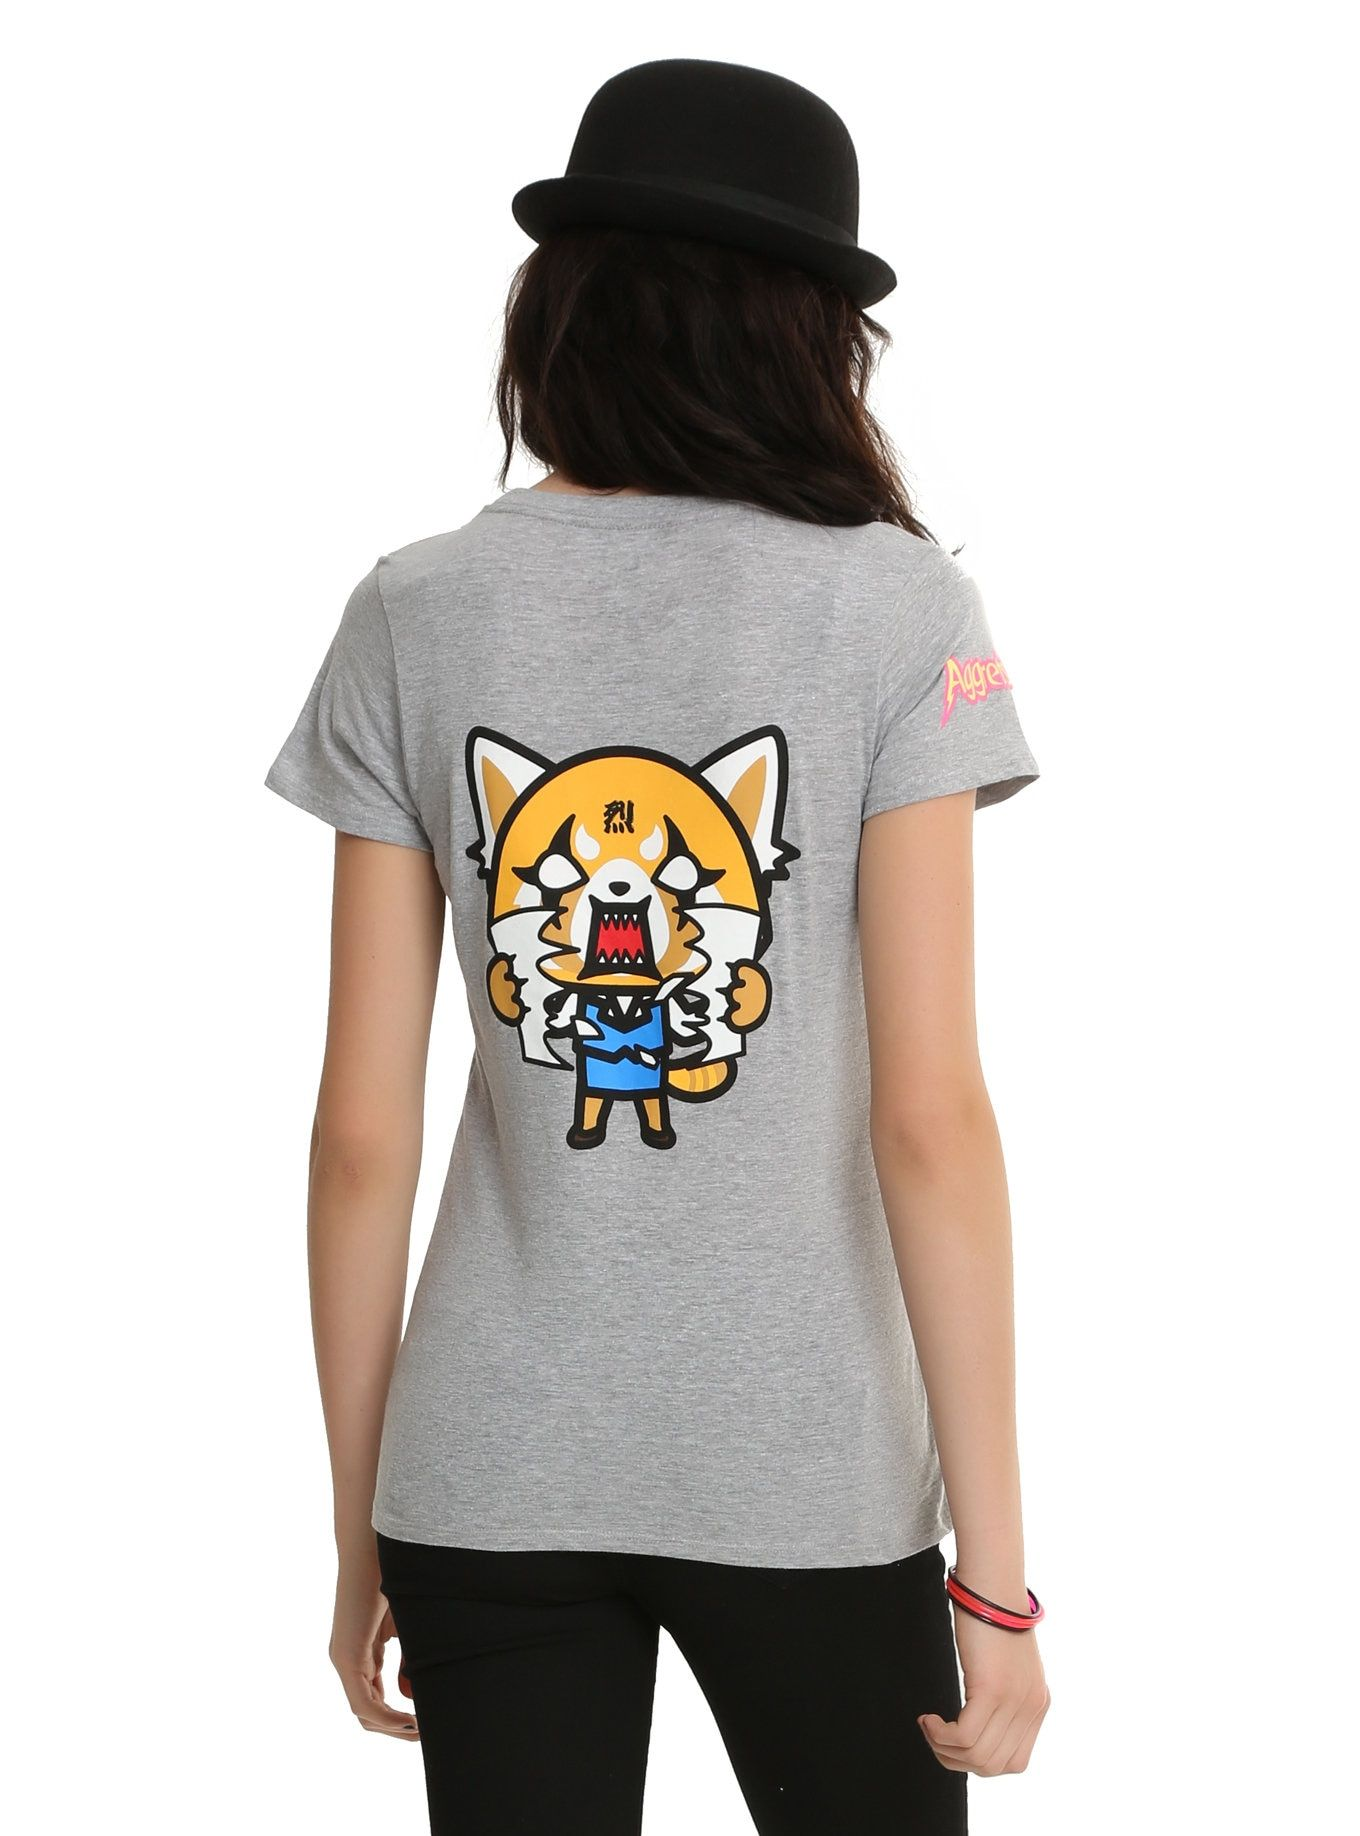 8afa17d3 Aggretsuko Front & Back Girls T-Shirt I've shown this Retsuko shirt  earlier, but this is the back of it. #aggretsuko #restsuko #shirts #ad